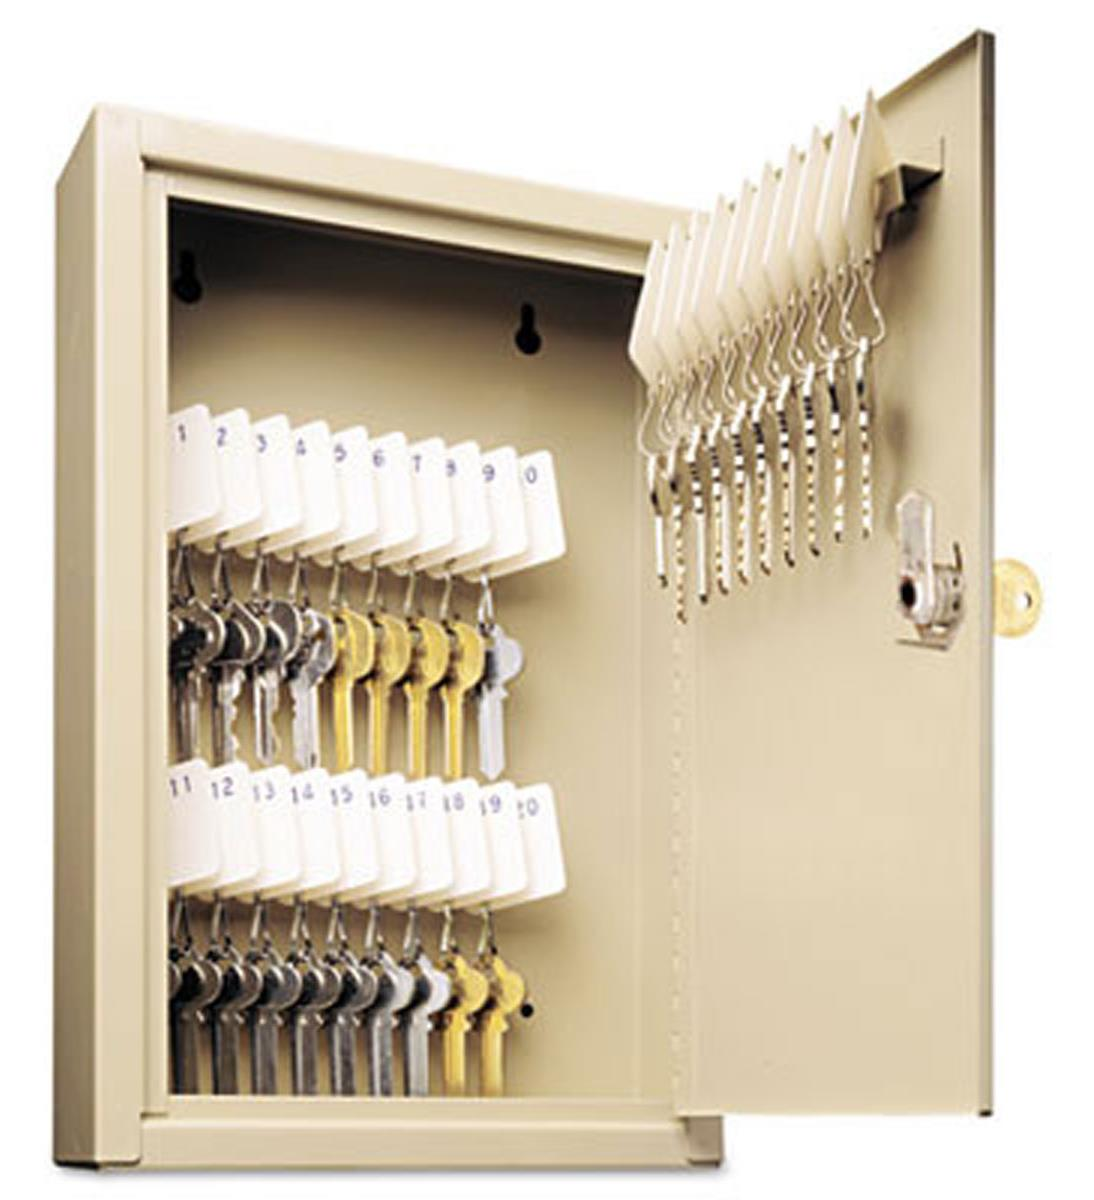 Valet Key Lockbox Beige Steel 30 Slot Organizer